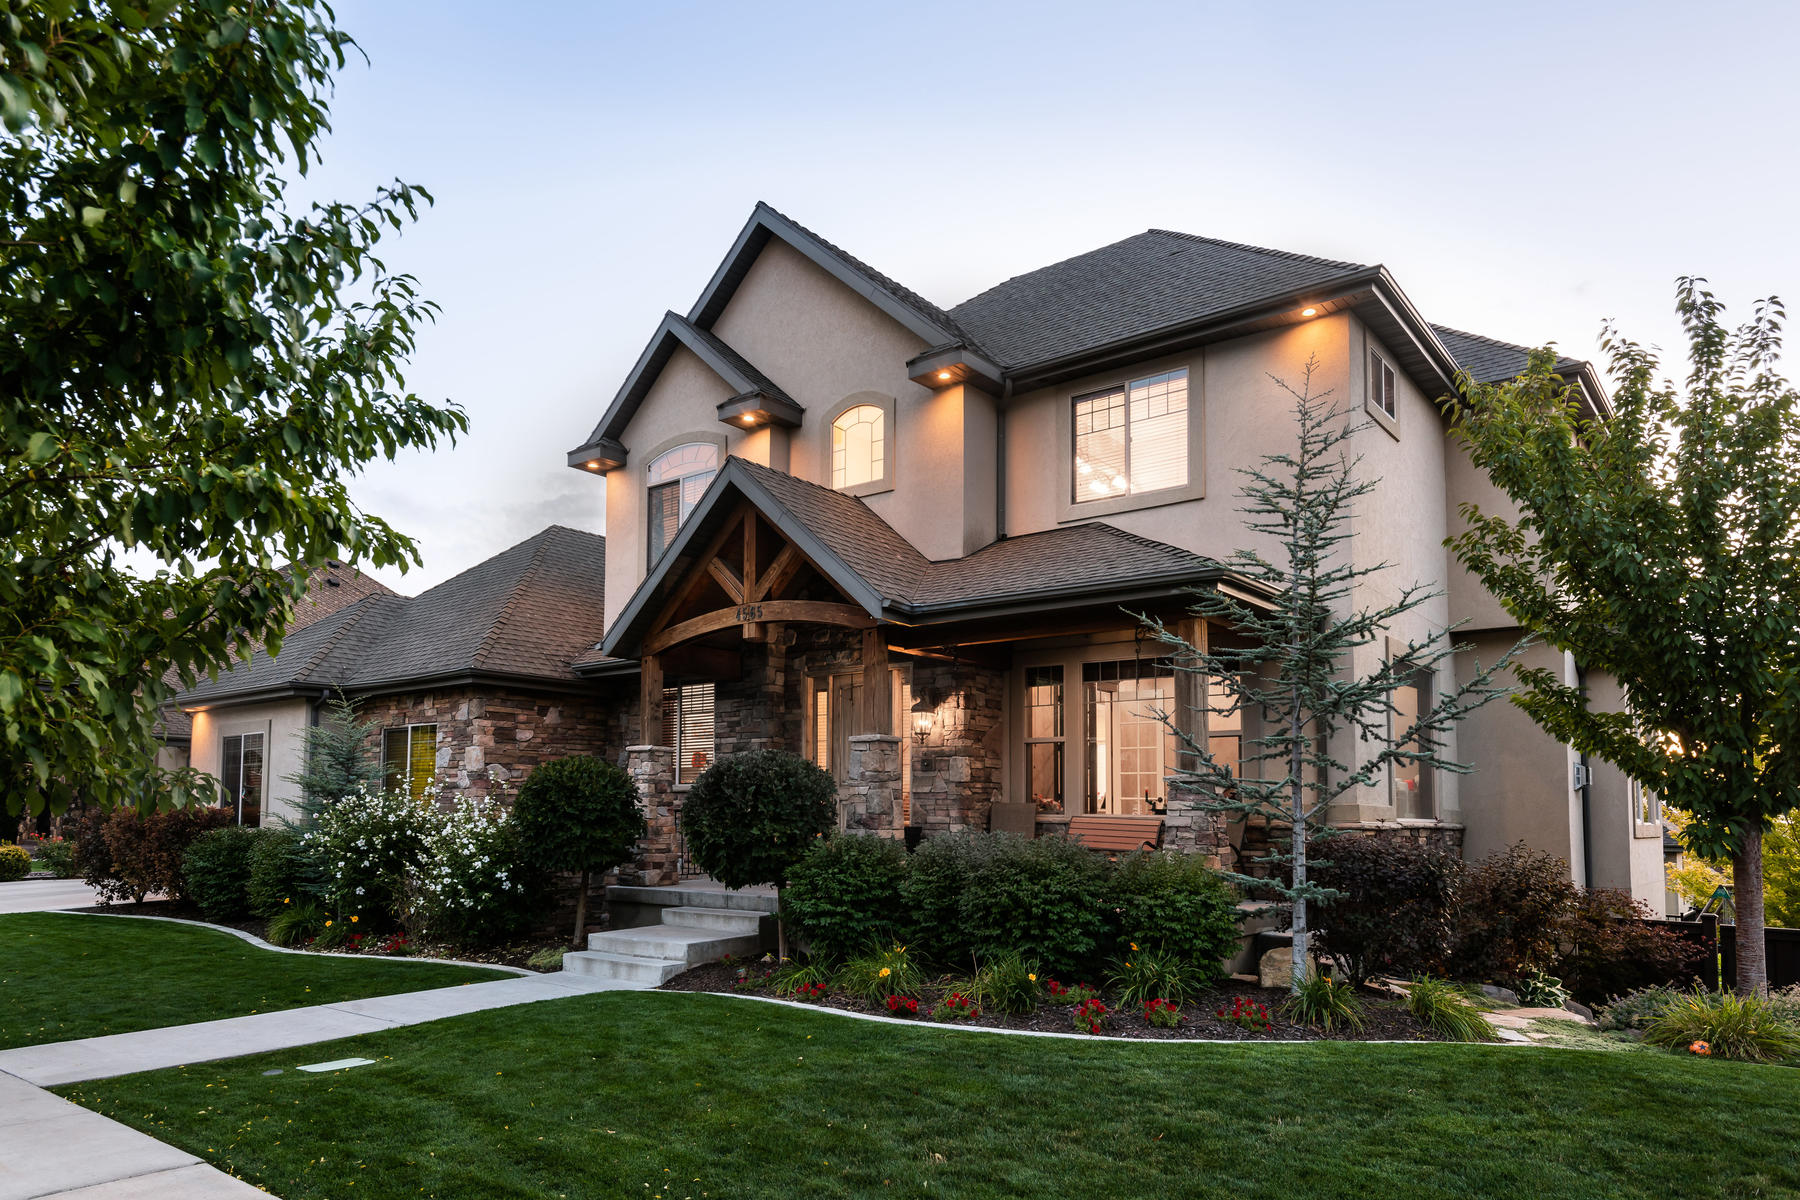 Single Family Homes for Sale at Beautiful Home on the East Bench of Provo 4565 North 475 East, Provo, Utah 84604 United States